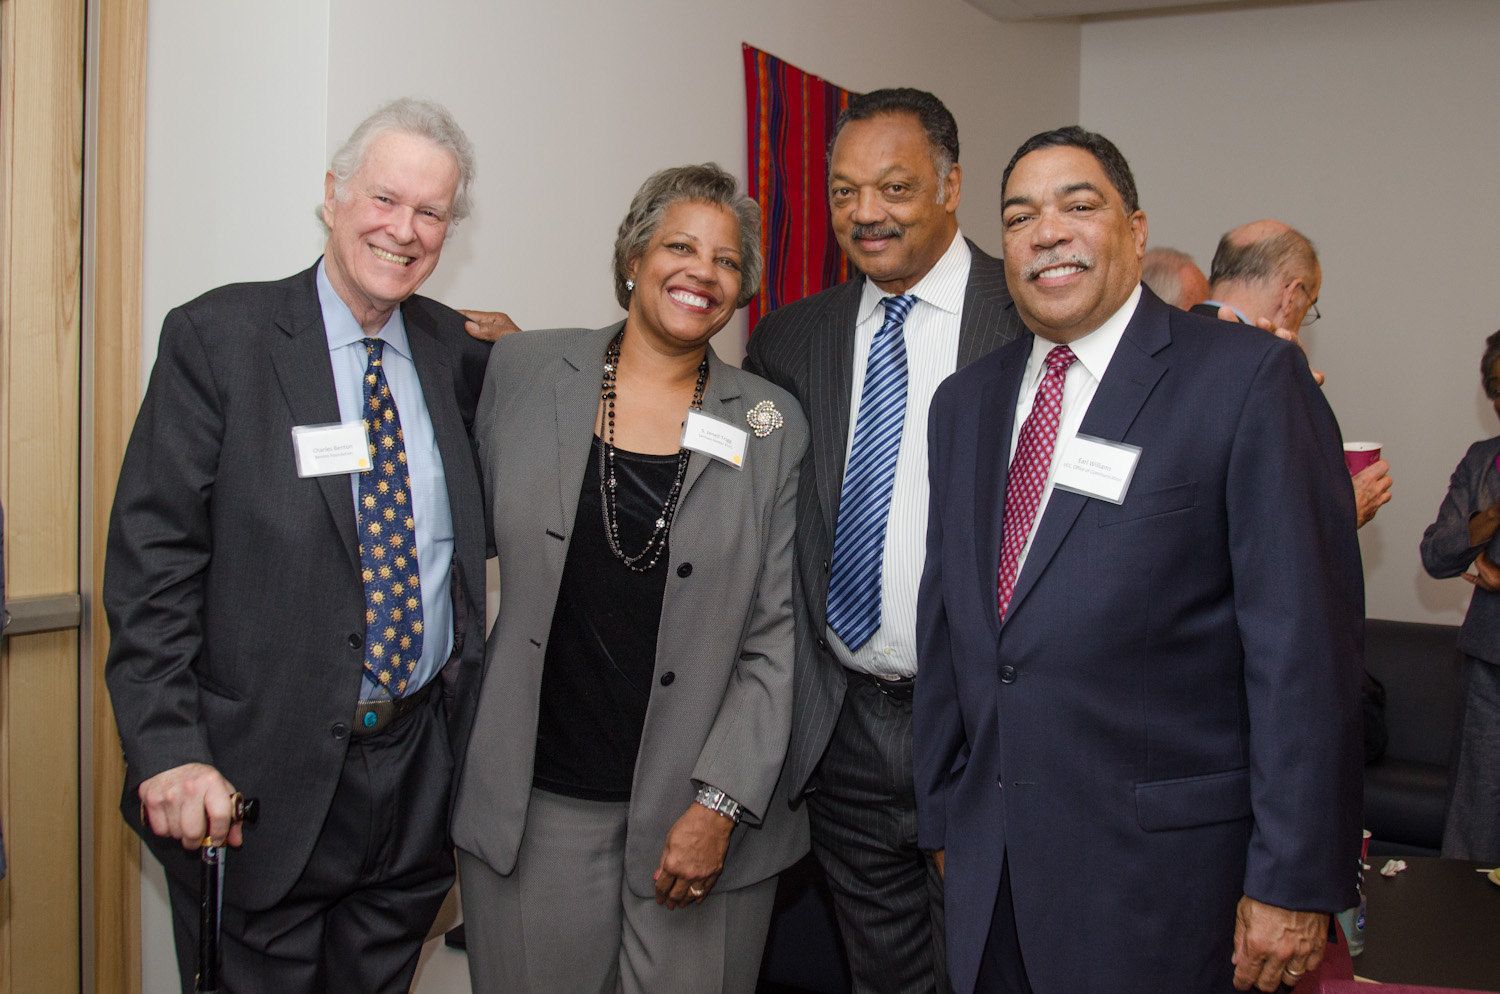 Charles Benton, S. Jenell Trigg, Rev. Jesse Jackson, UCC OC Inc. Board Chair, Earl Williams